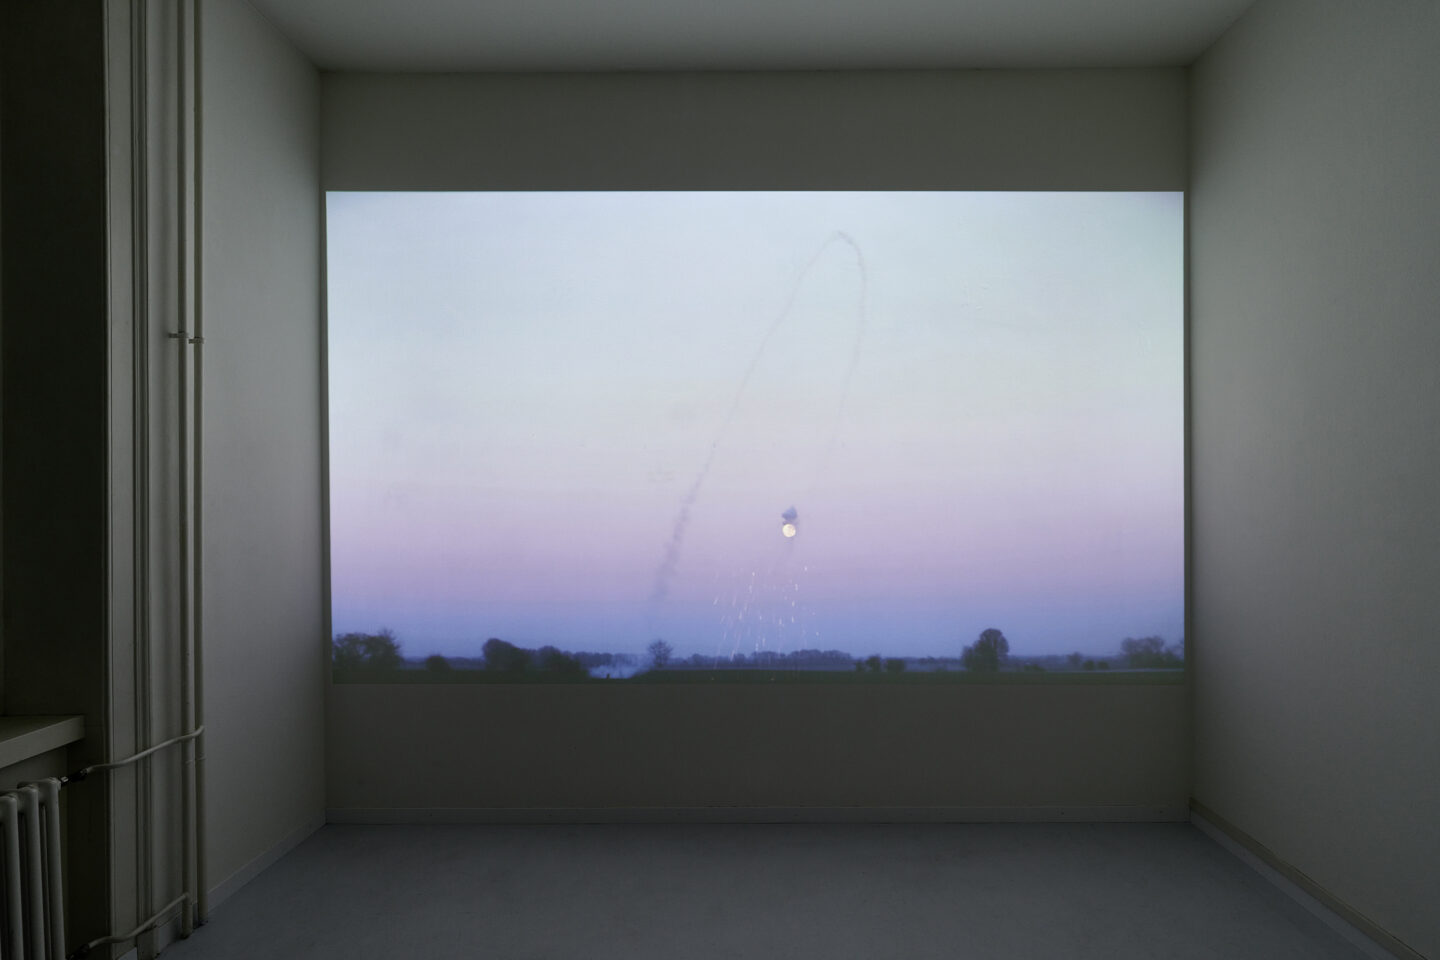 Exhibition View Malte Bartsch Soloshow «Bottom Up; view on Rakete, 2019, fireworks, rubber band, full HD video, 12 min Loop» at Lemoyne Project, Zurich, 2020 / Courtesy: the artist and Lemoyne Project